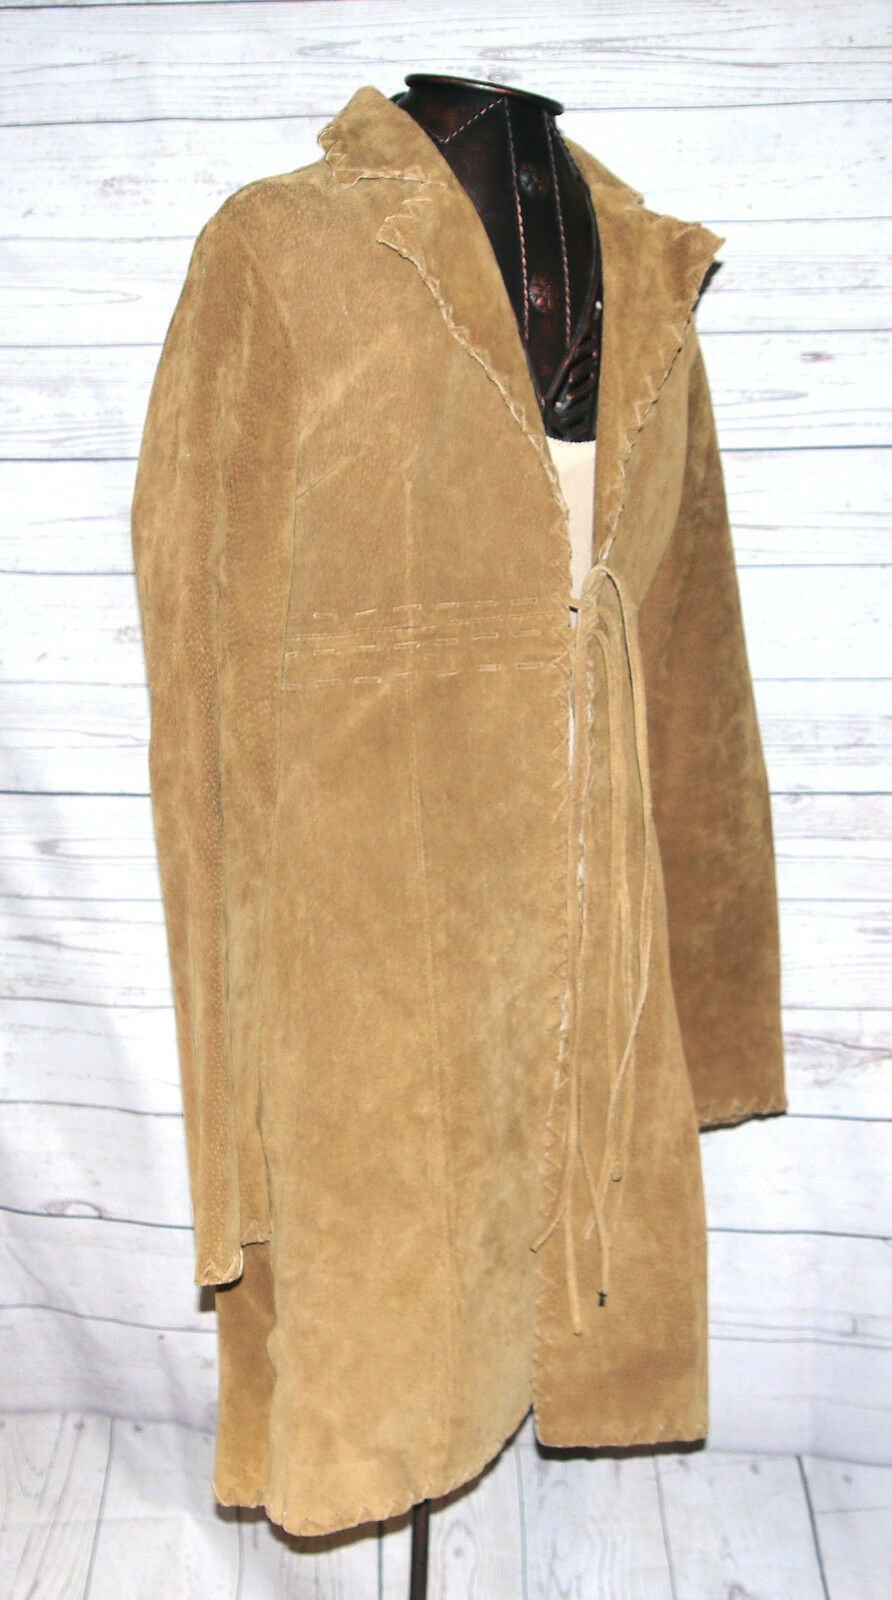 Wet Seal Women's Long Suede Suede Suede Leather Tie-Up Trench Coat Size Small fa1f0a